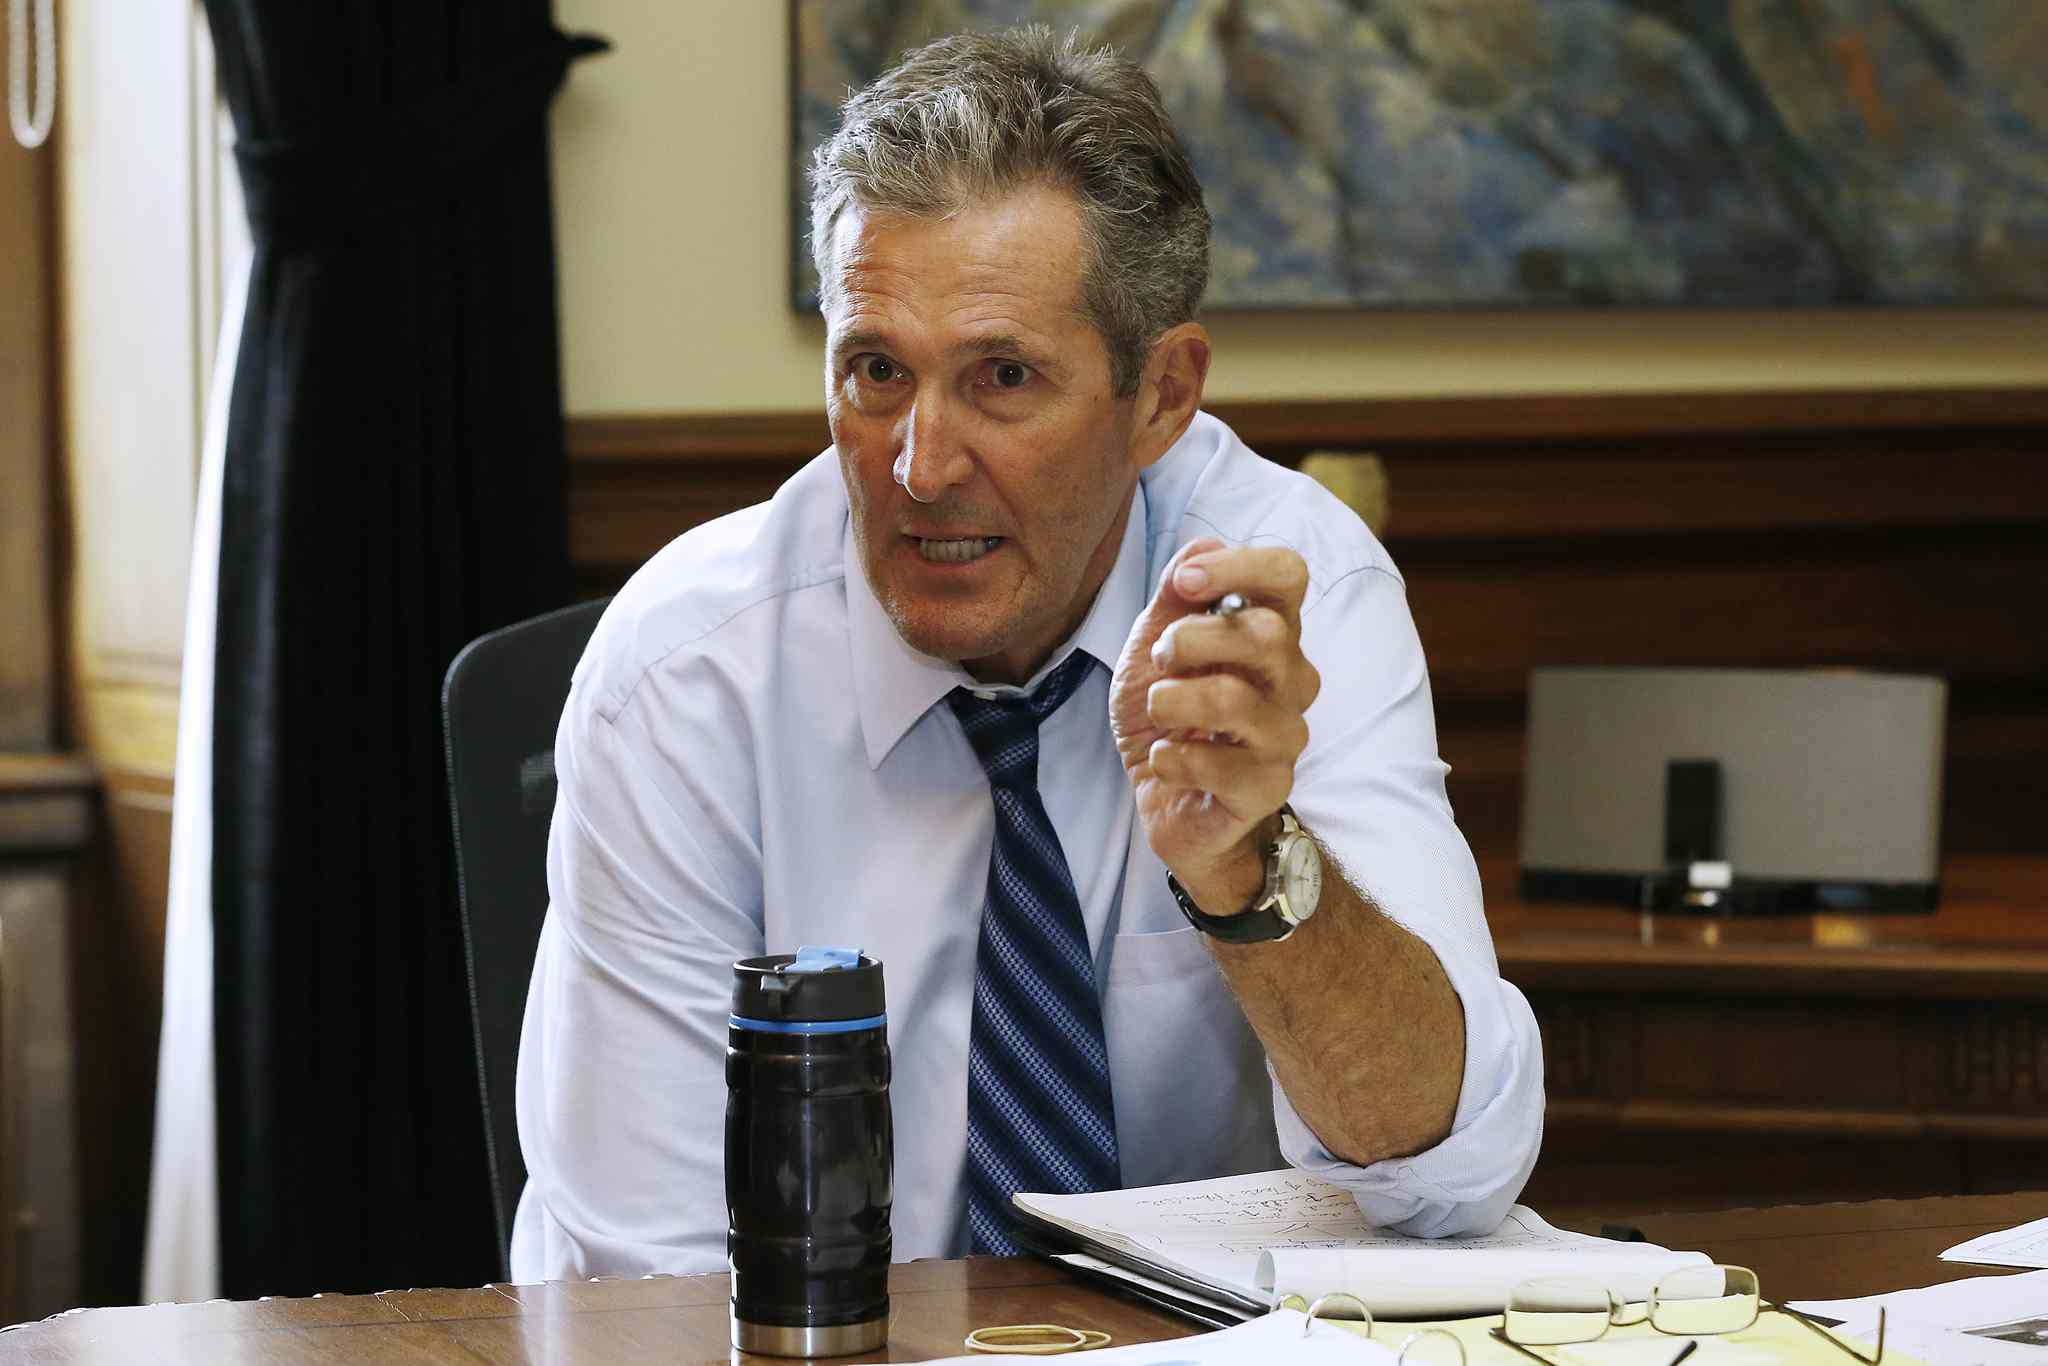 Premier Brian Pallister suggested the story about his out-of-country communications didn't immediately come to light because of the decisions of provincial bureaucrats who handle freedom of information requests.